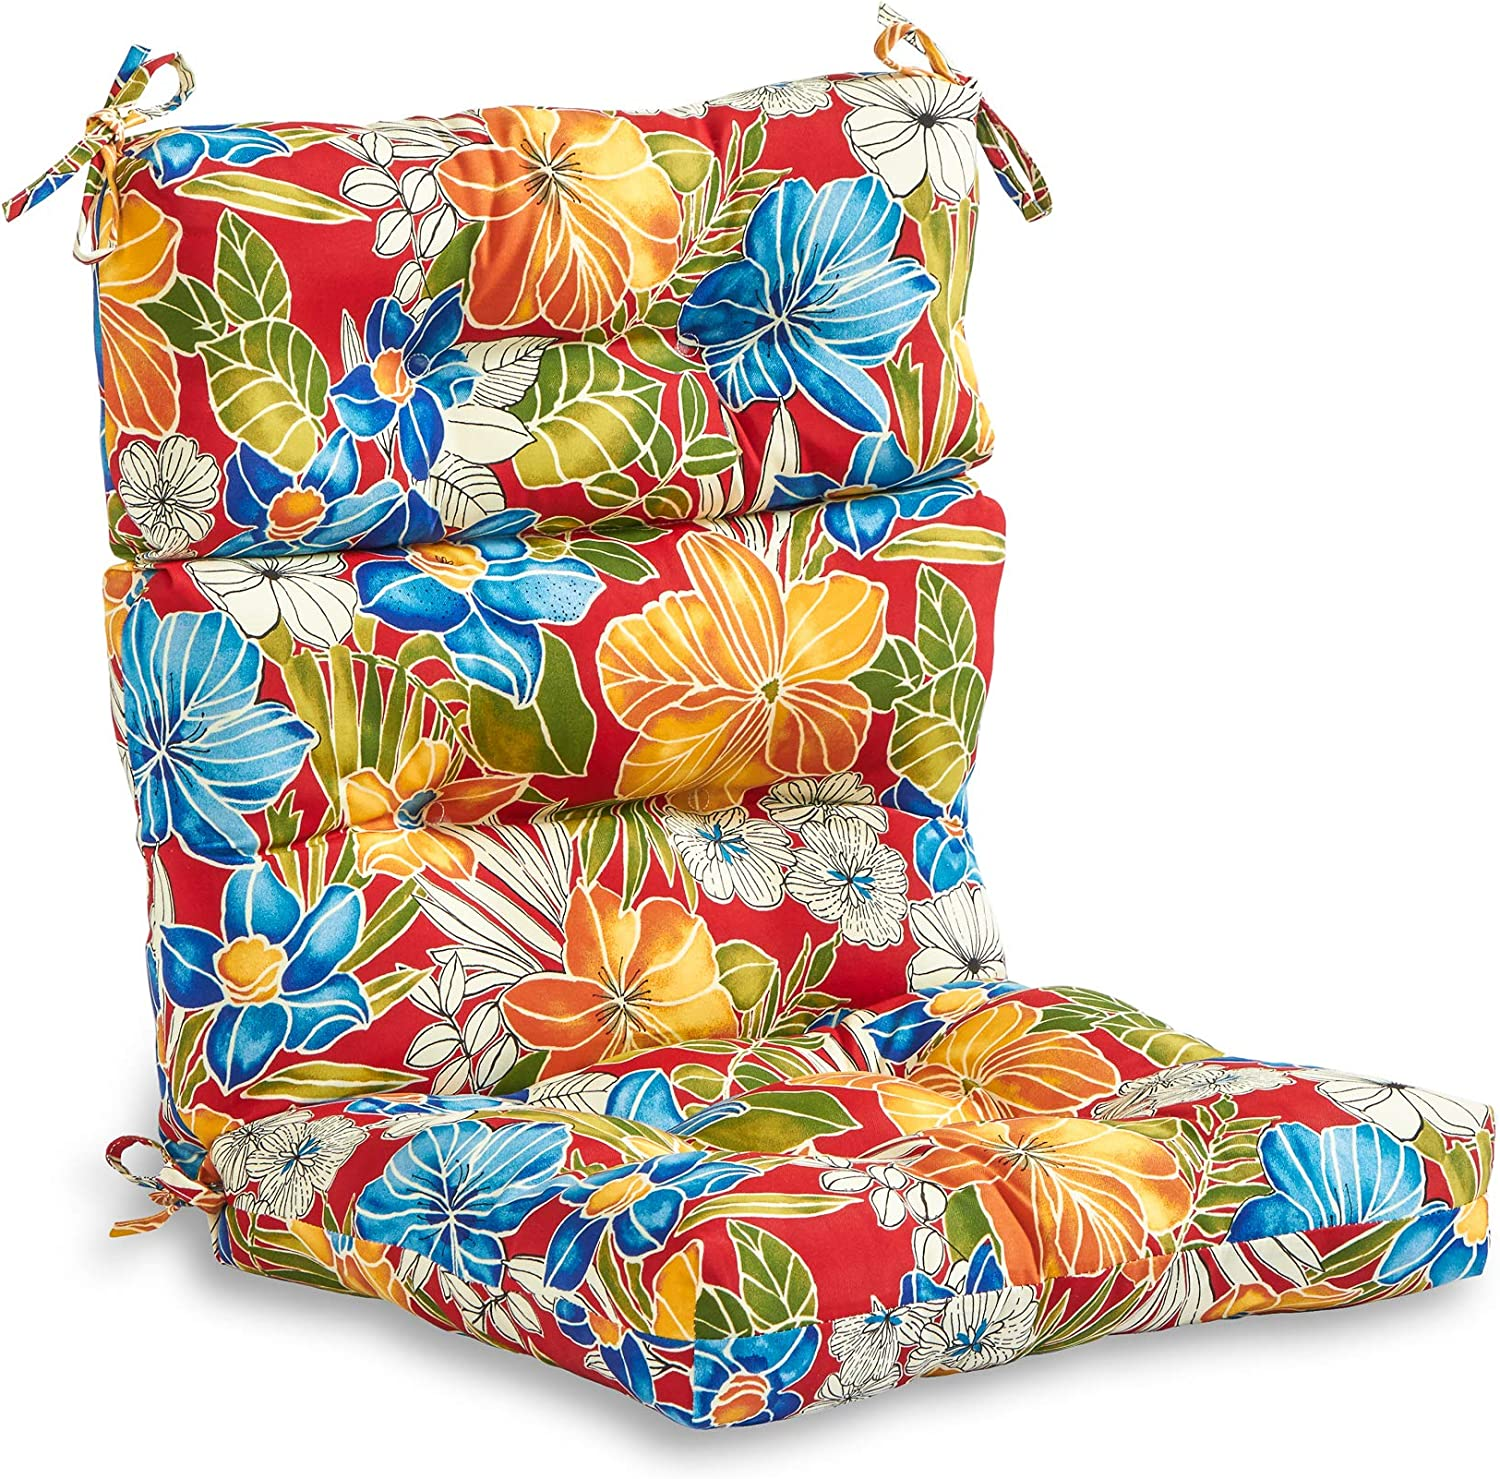 South Pine Porch AM4809-ALOHA-RED Aloha Red Floral Outdoor High Back Chair Cushion